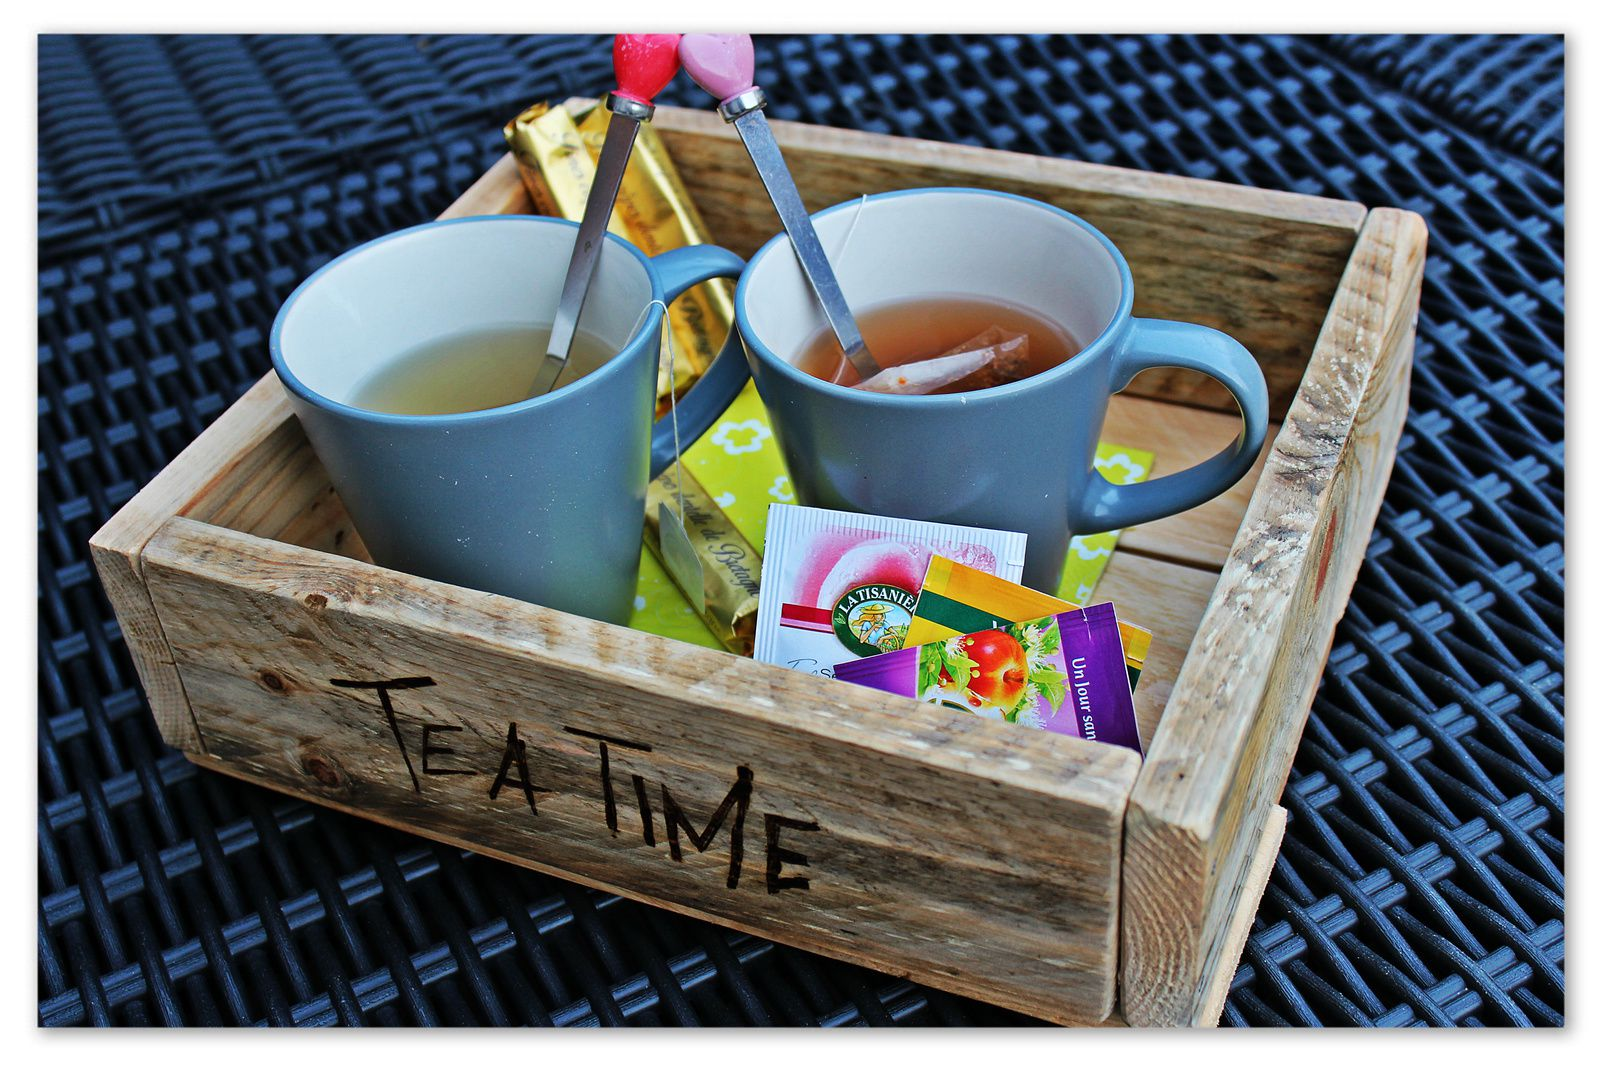 http://luniversdegarfield59.over-blog.com plalette bois plateau récup thé tea time